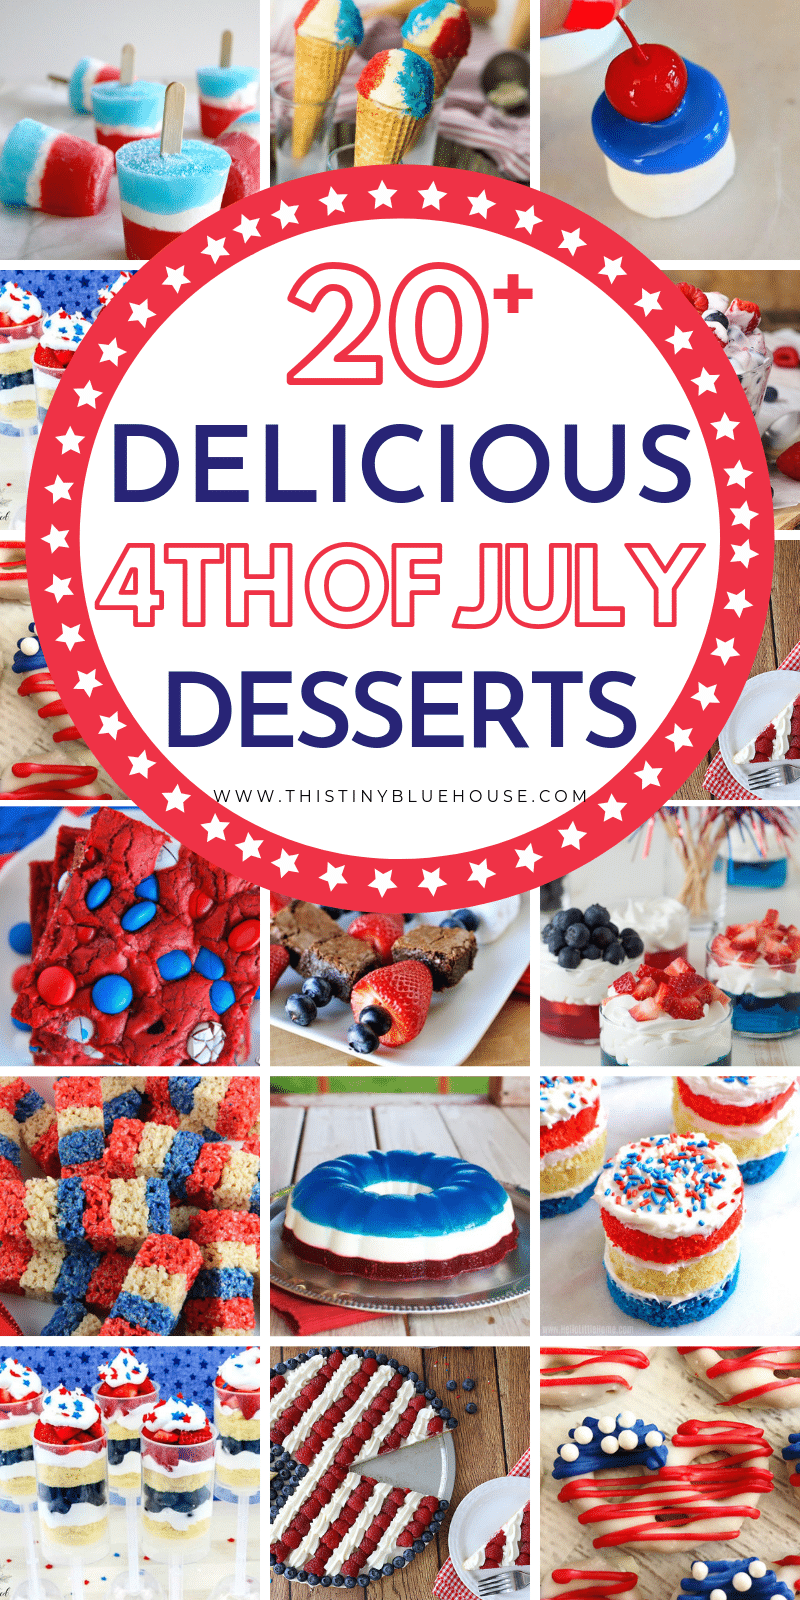 if you're planning and Independence day BBQ then these 4th of July Dessert ideas are the perfect way to end your delicious meal. With over 20 patriotic desserts to choose from you'll have a hard time making just one. #4thofjulydesserts #4thofjulydessertsforacrowd #4thofjulydessertsrecipes #independencedaydesserts #redbluewhitedesserts #patrioticdesserts